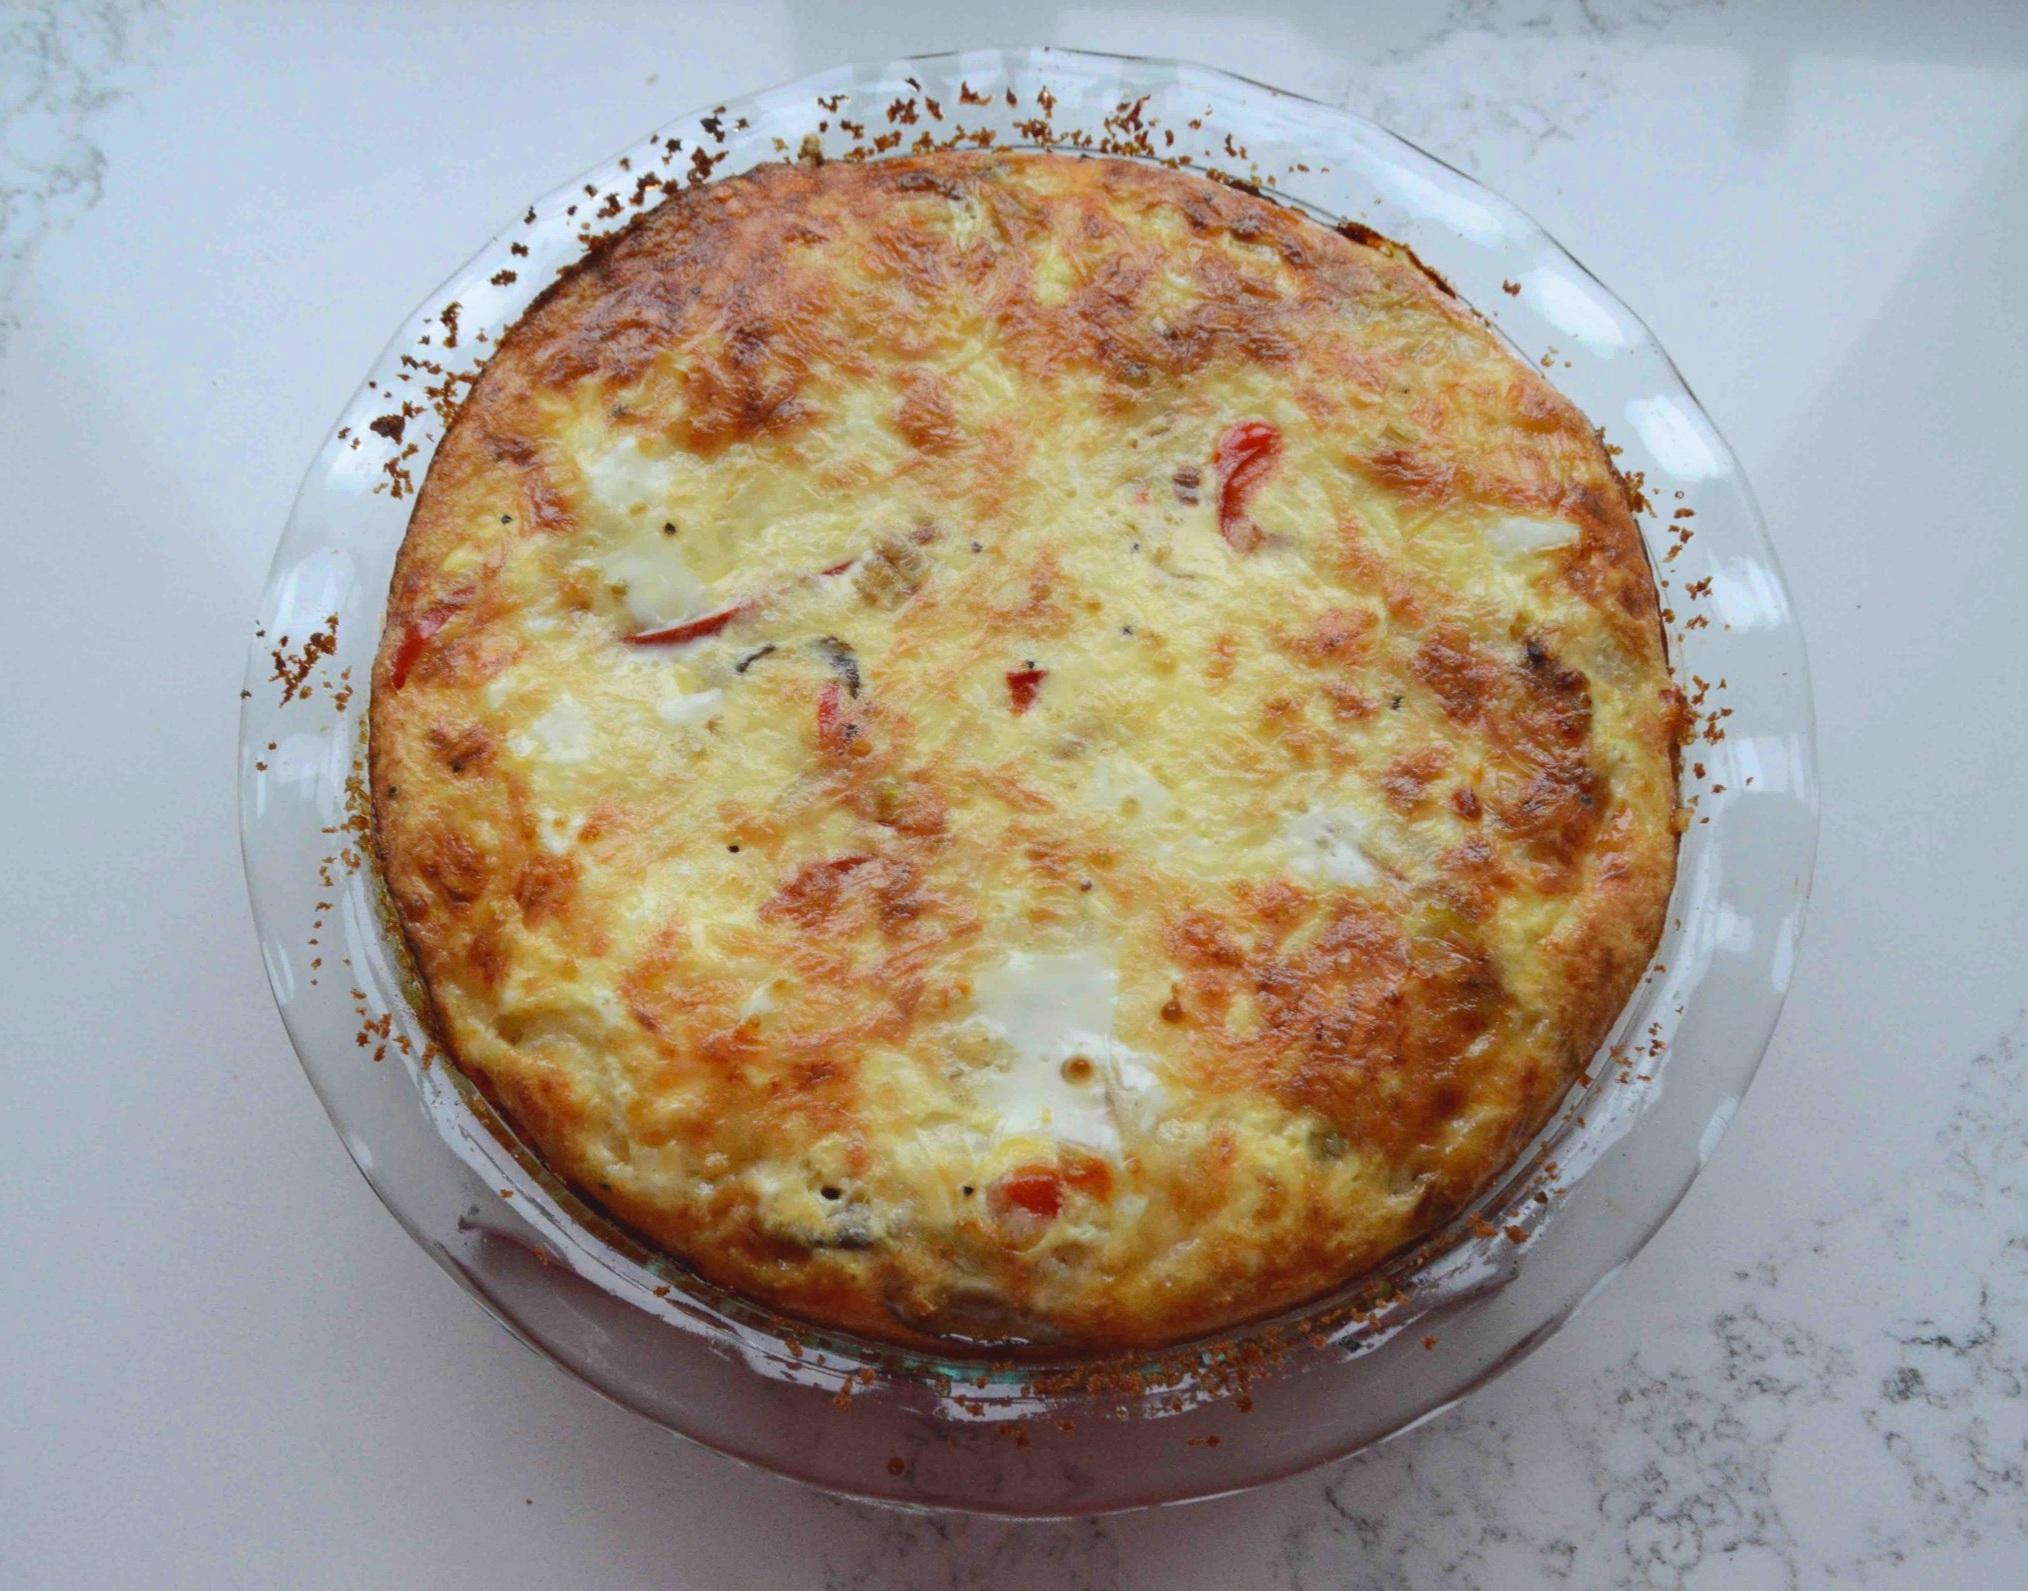 Another+Crustless+Quiche%3A+Caramelized+Onion%2C+Mushroom%2C+Red+Pepper+and+Fontina